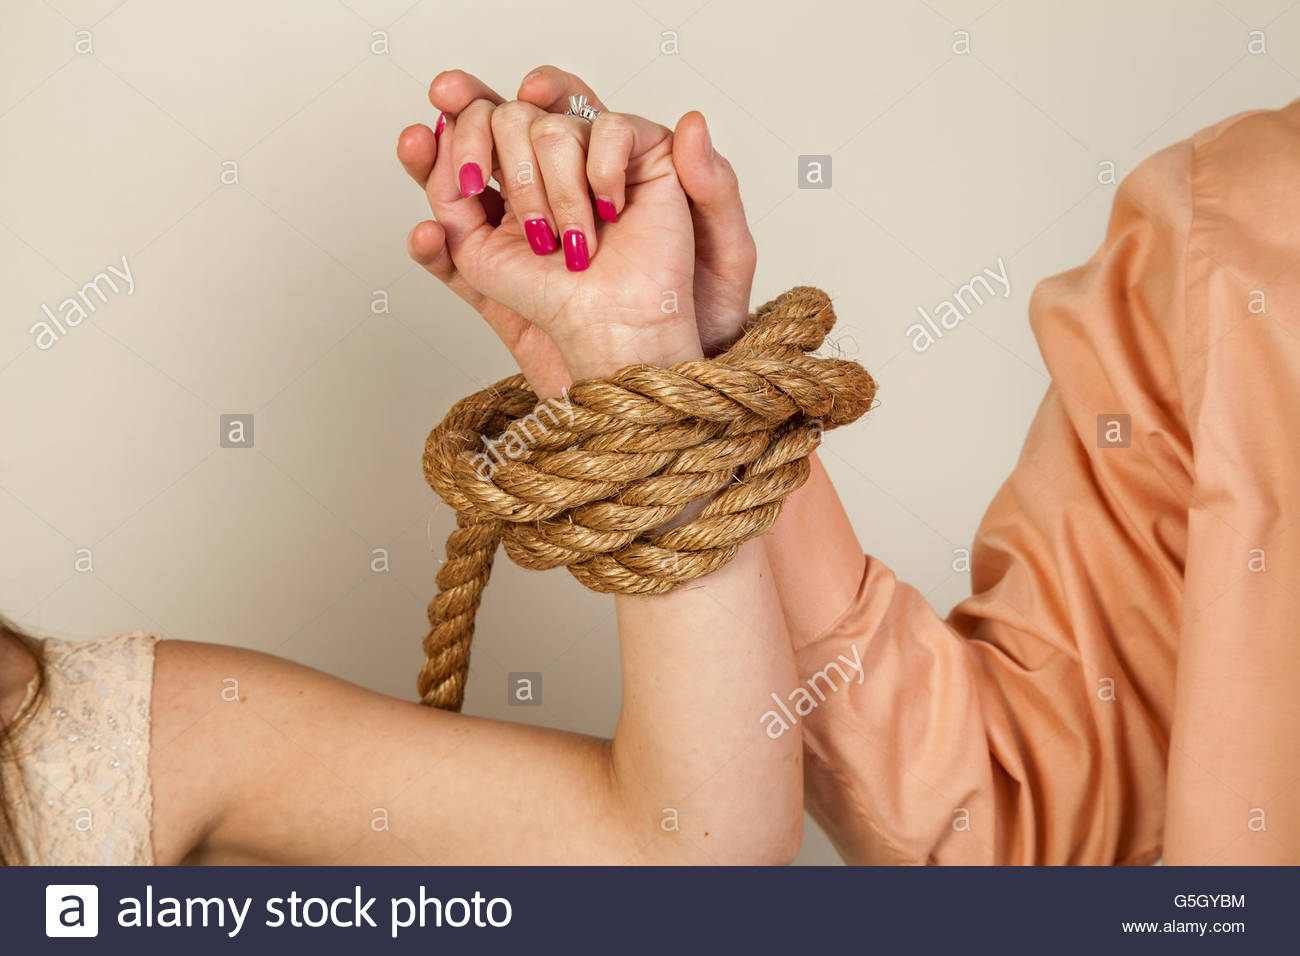 Close-up of a young couple's tied arms. - Stock Image